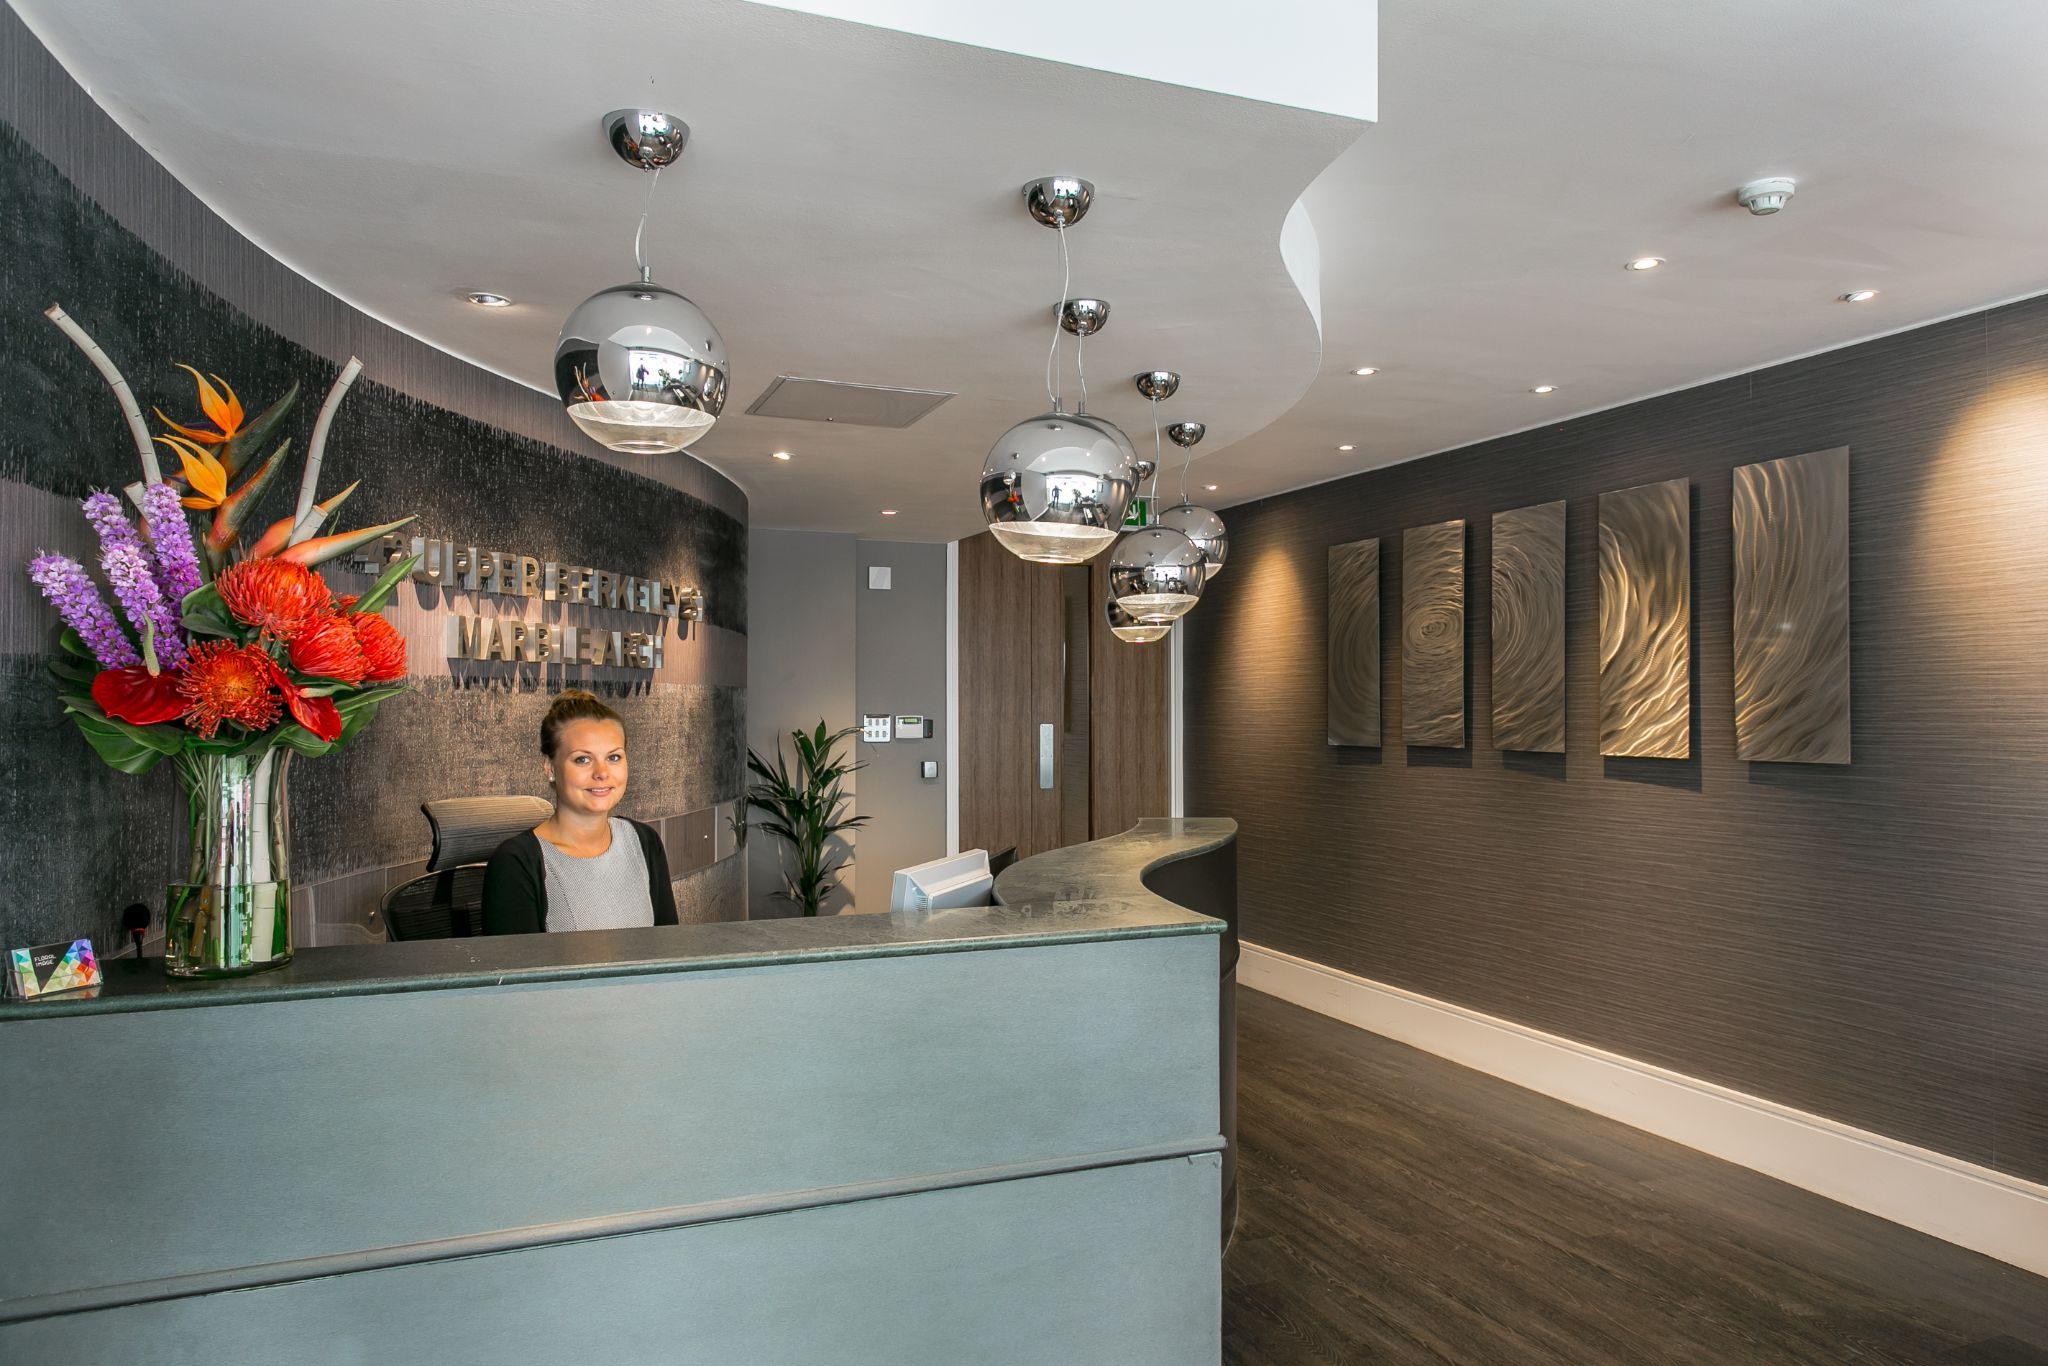 Clarendon Business Centres - 42 Upper Berkeley Street, W1 - Marble Arch